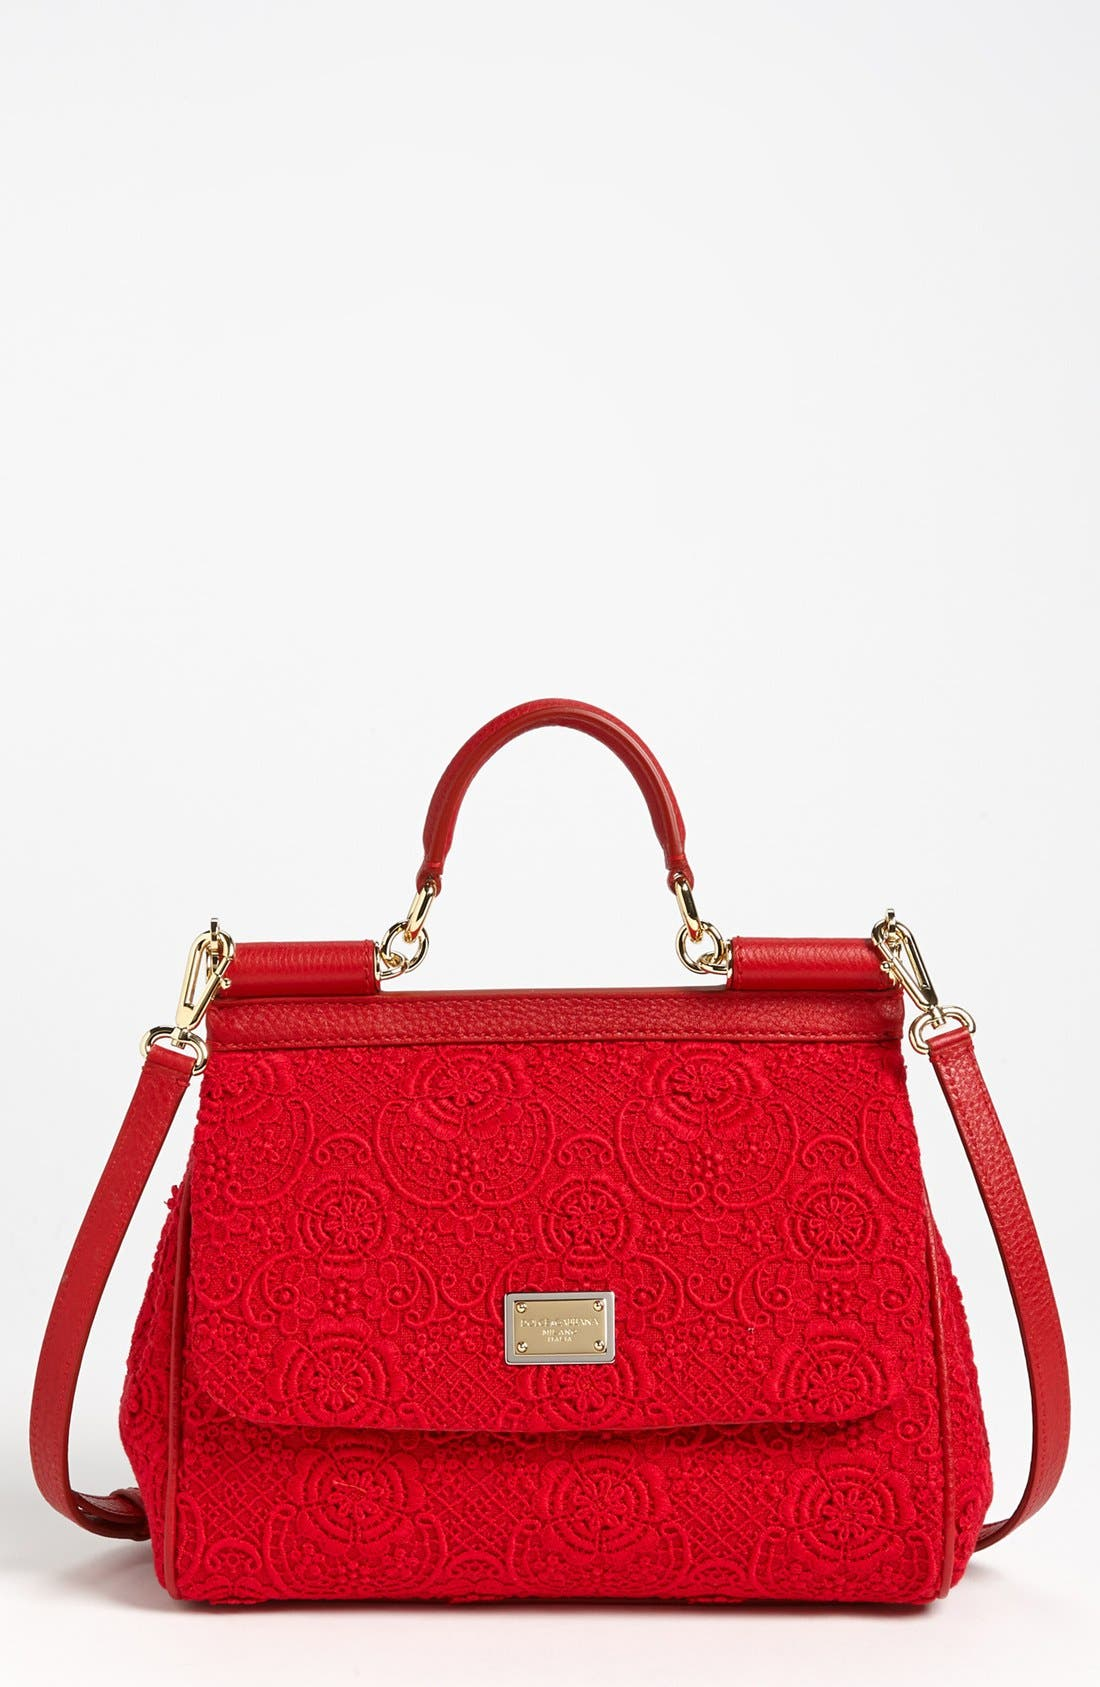 Alternate Image 1 Selected - Dolce&Gabbana 'Miss Sicily - Small' Leather & Lace Satchel